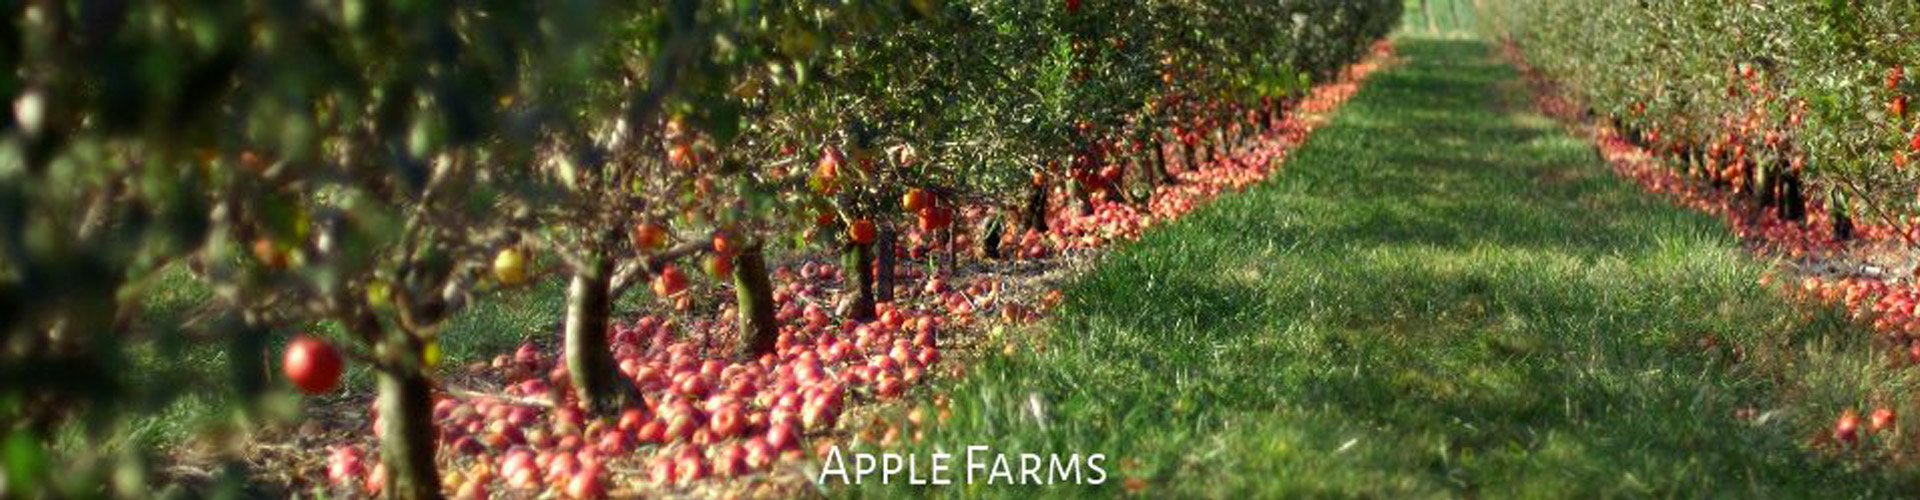 zapplefarms